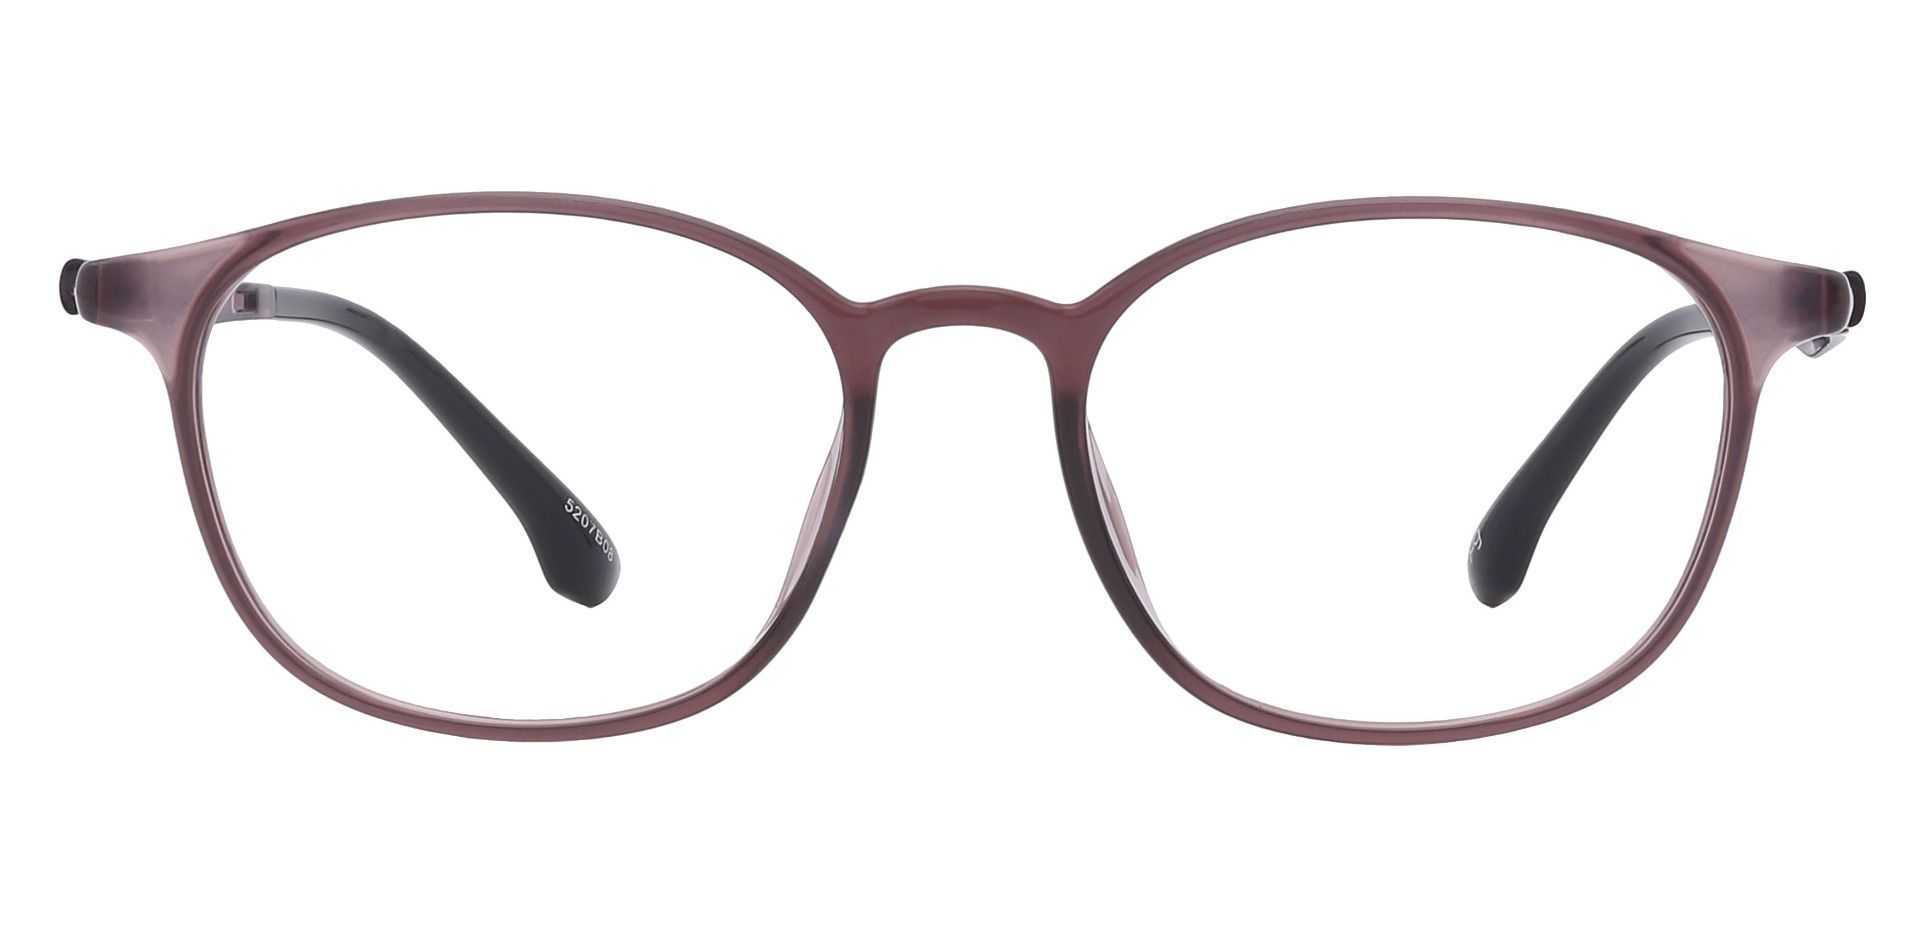 Shannon Oval Prescription Glasses - Brown